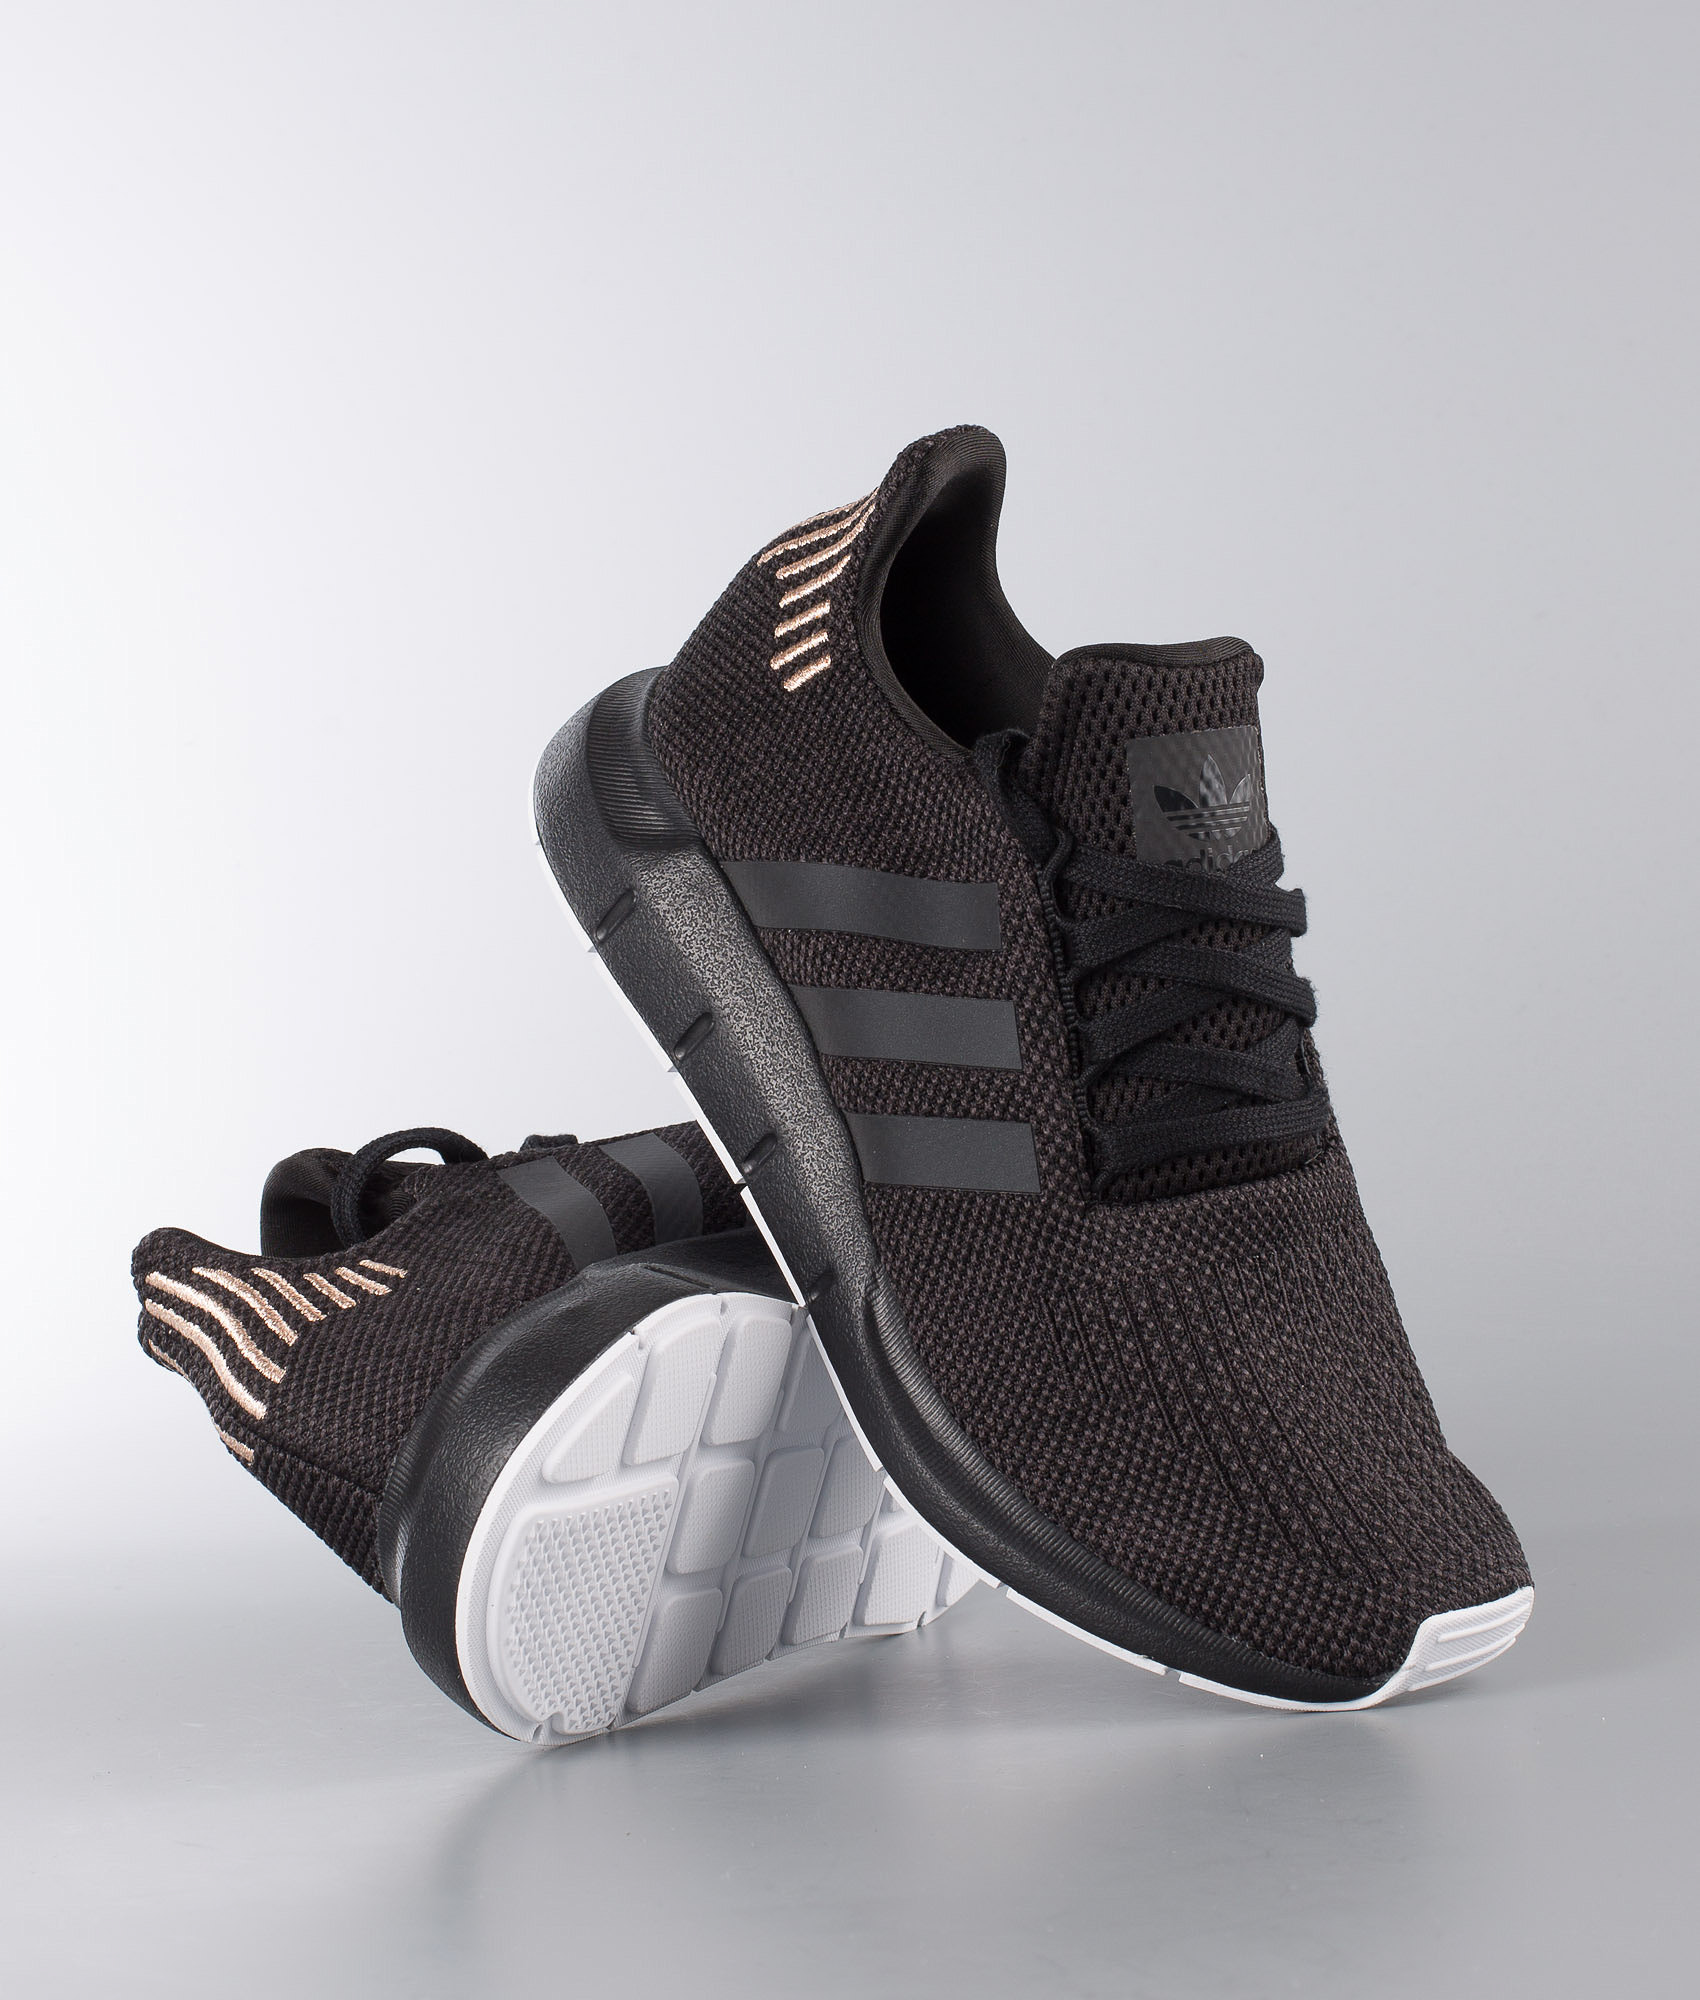 f98fe71cfdf7 Adidas Originals Swift Run W Shoes Core Black Carbon Ftwr White ...